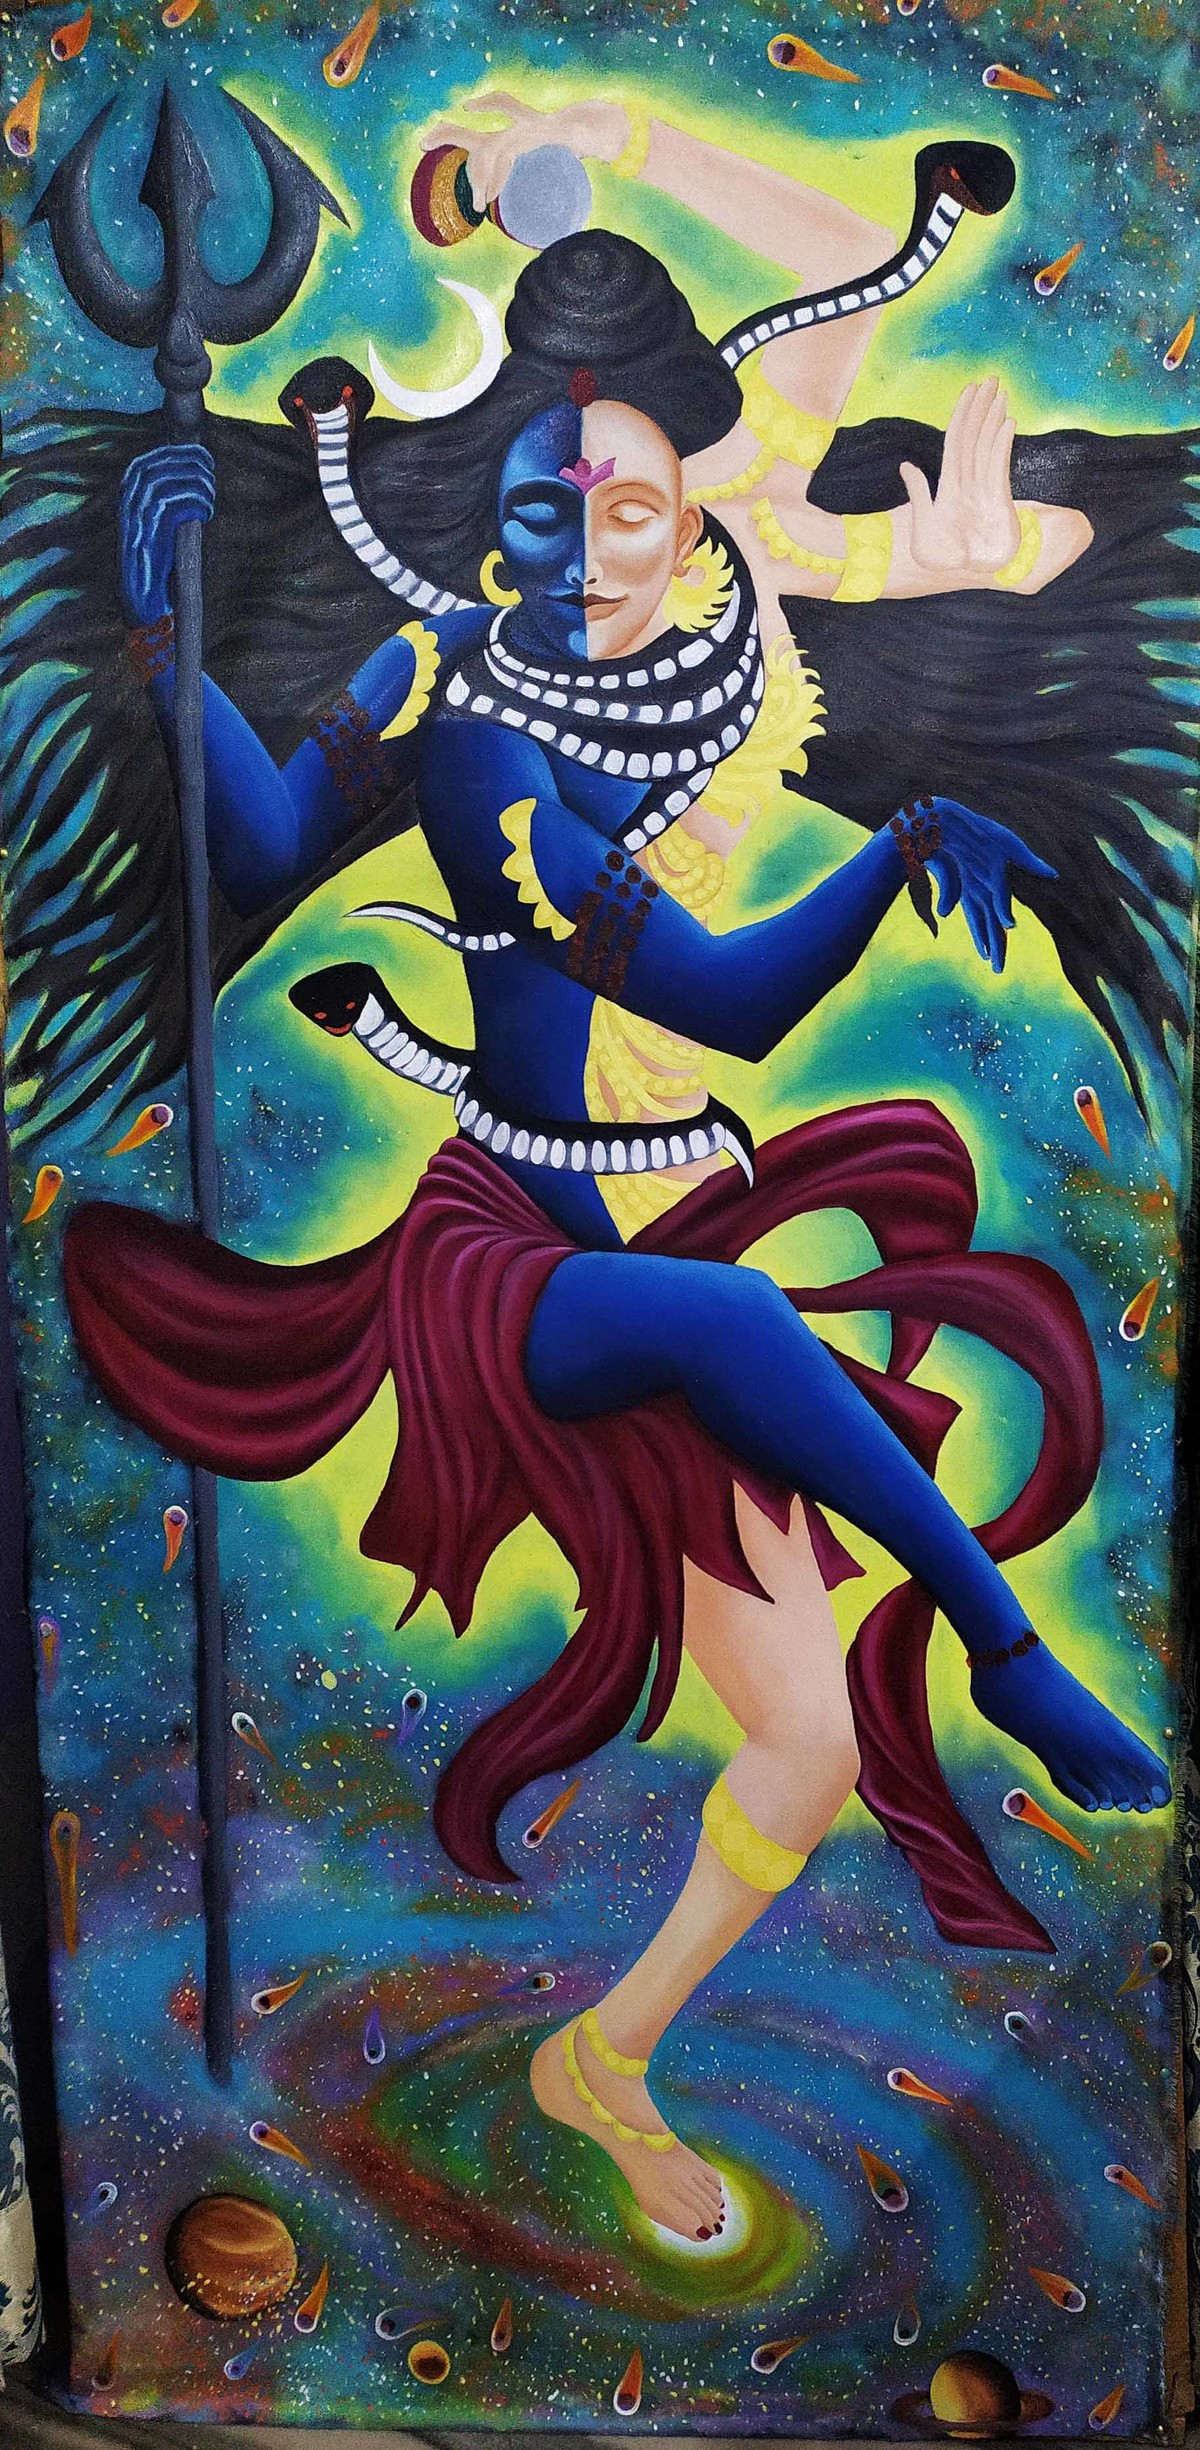 Dance of Creation by Hemant Verma, Traditional Painting, Oil on Canvas, Yuma color